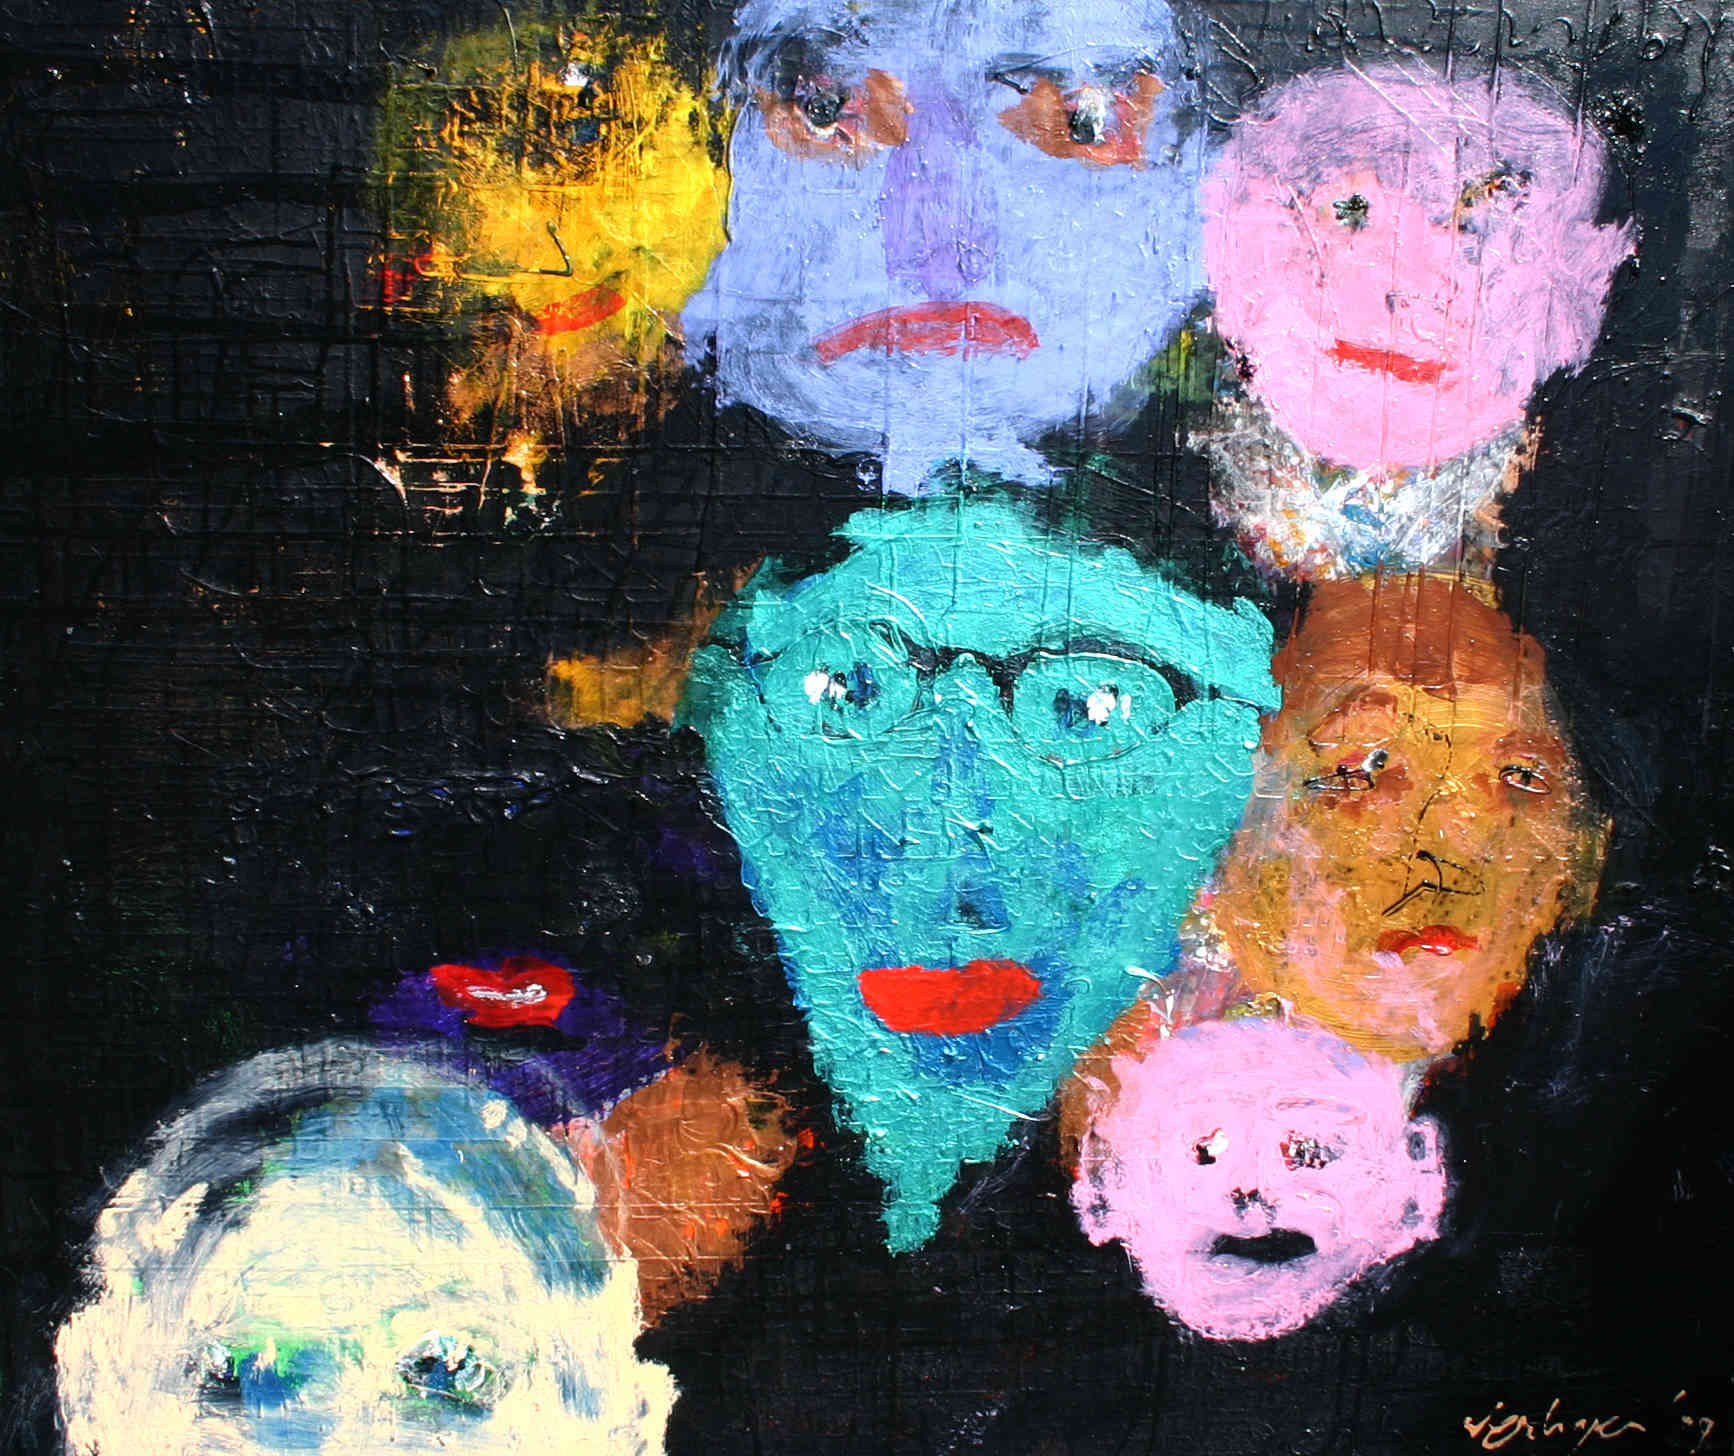 People from Nighttown Hans Verhagen (1939-) - Kunsthandel Studio 2000